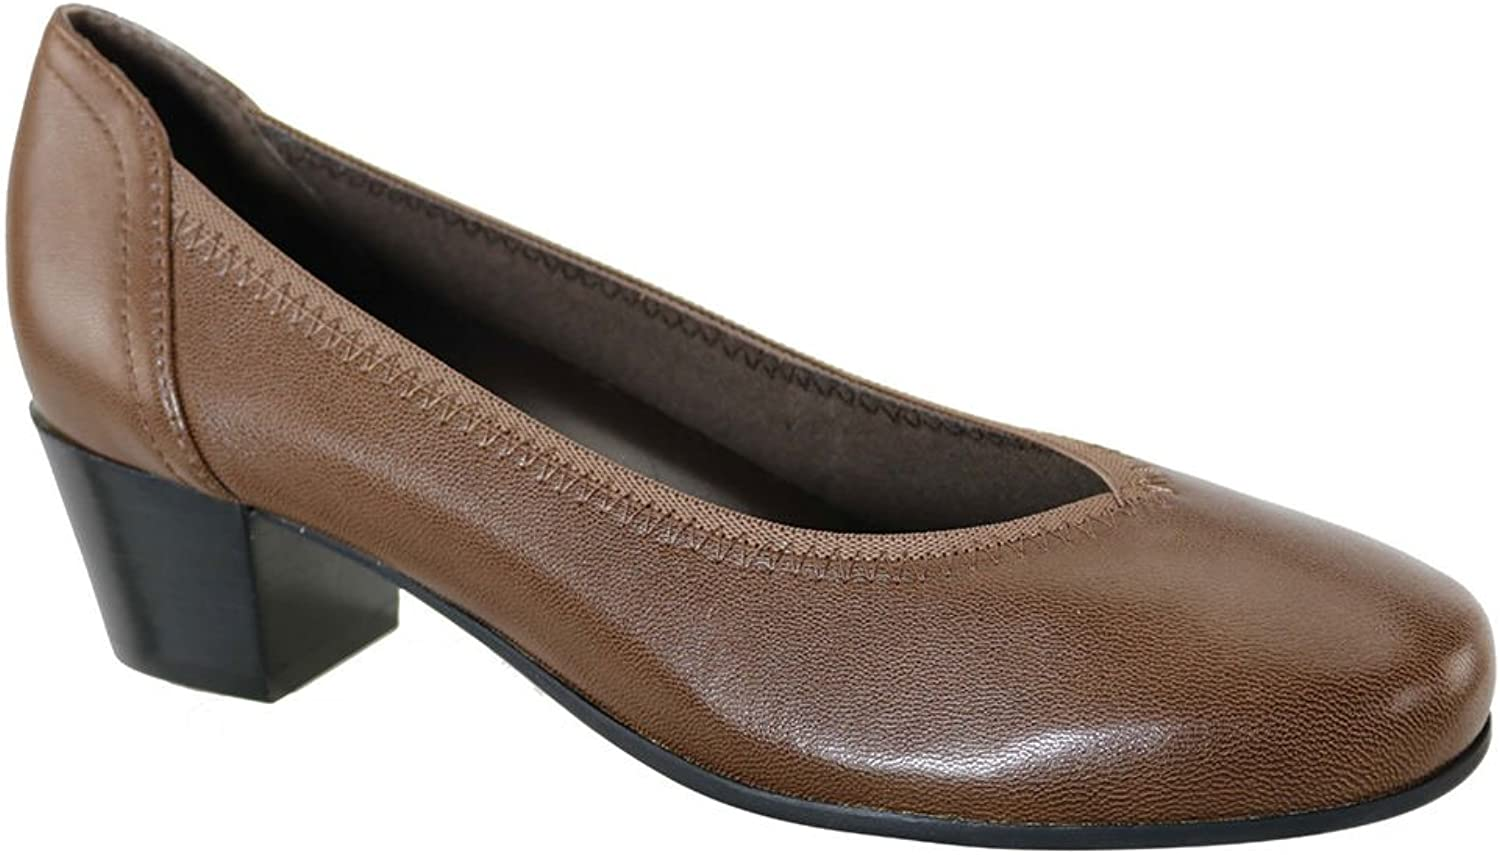 David Tate Womens Madera Closed Toe Classic Pumps